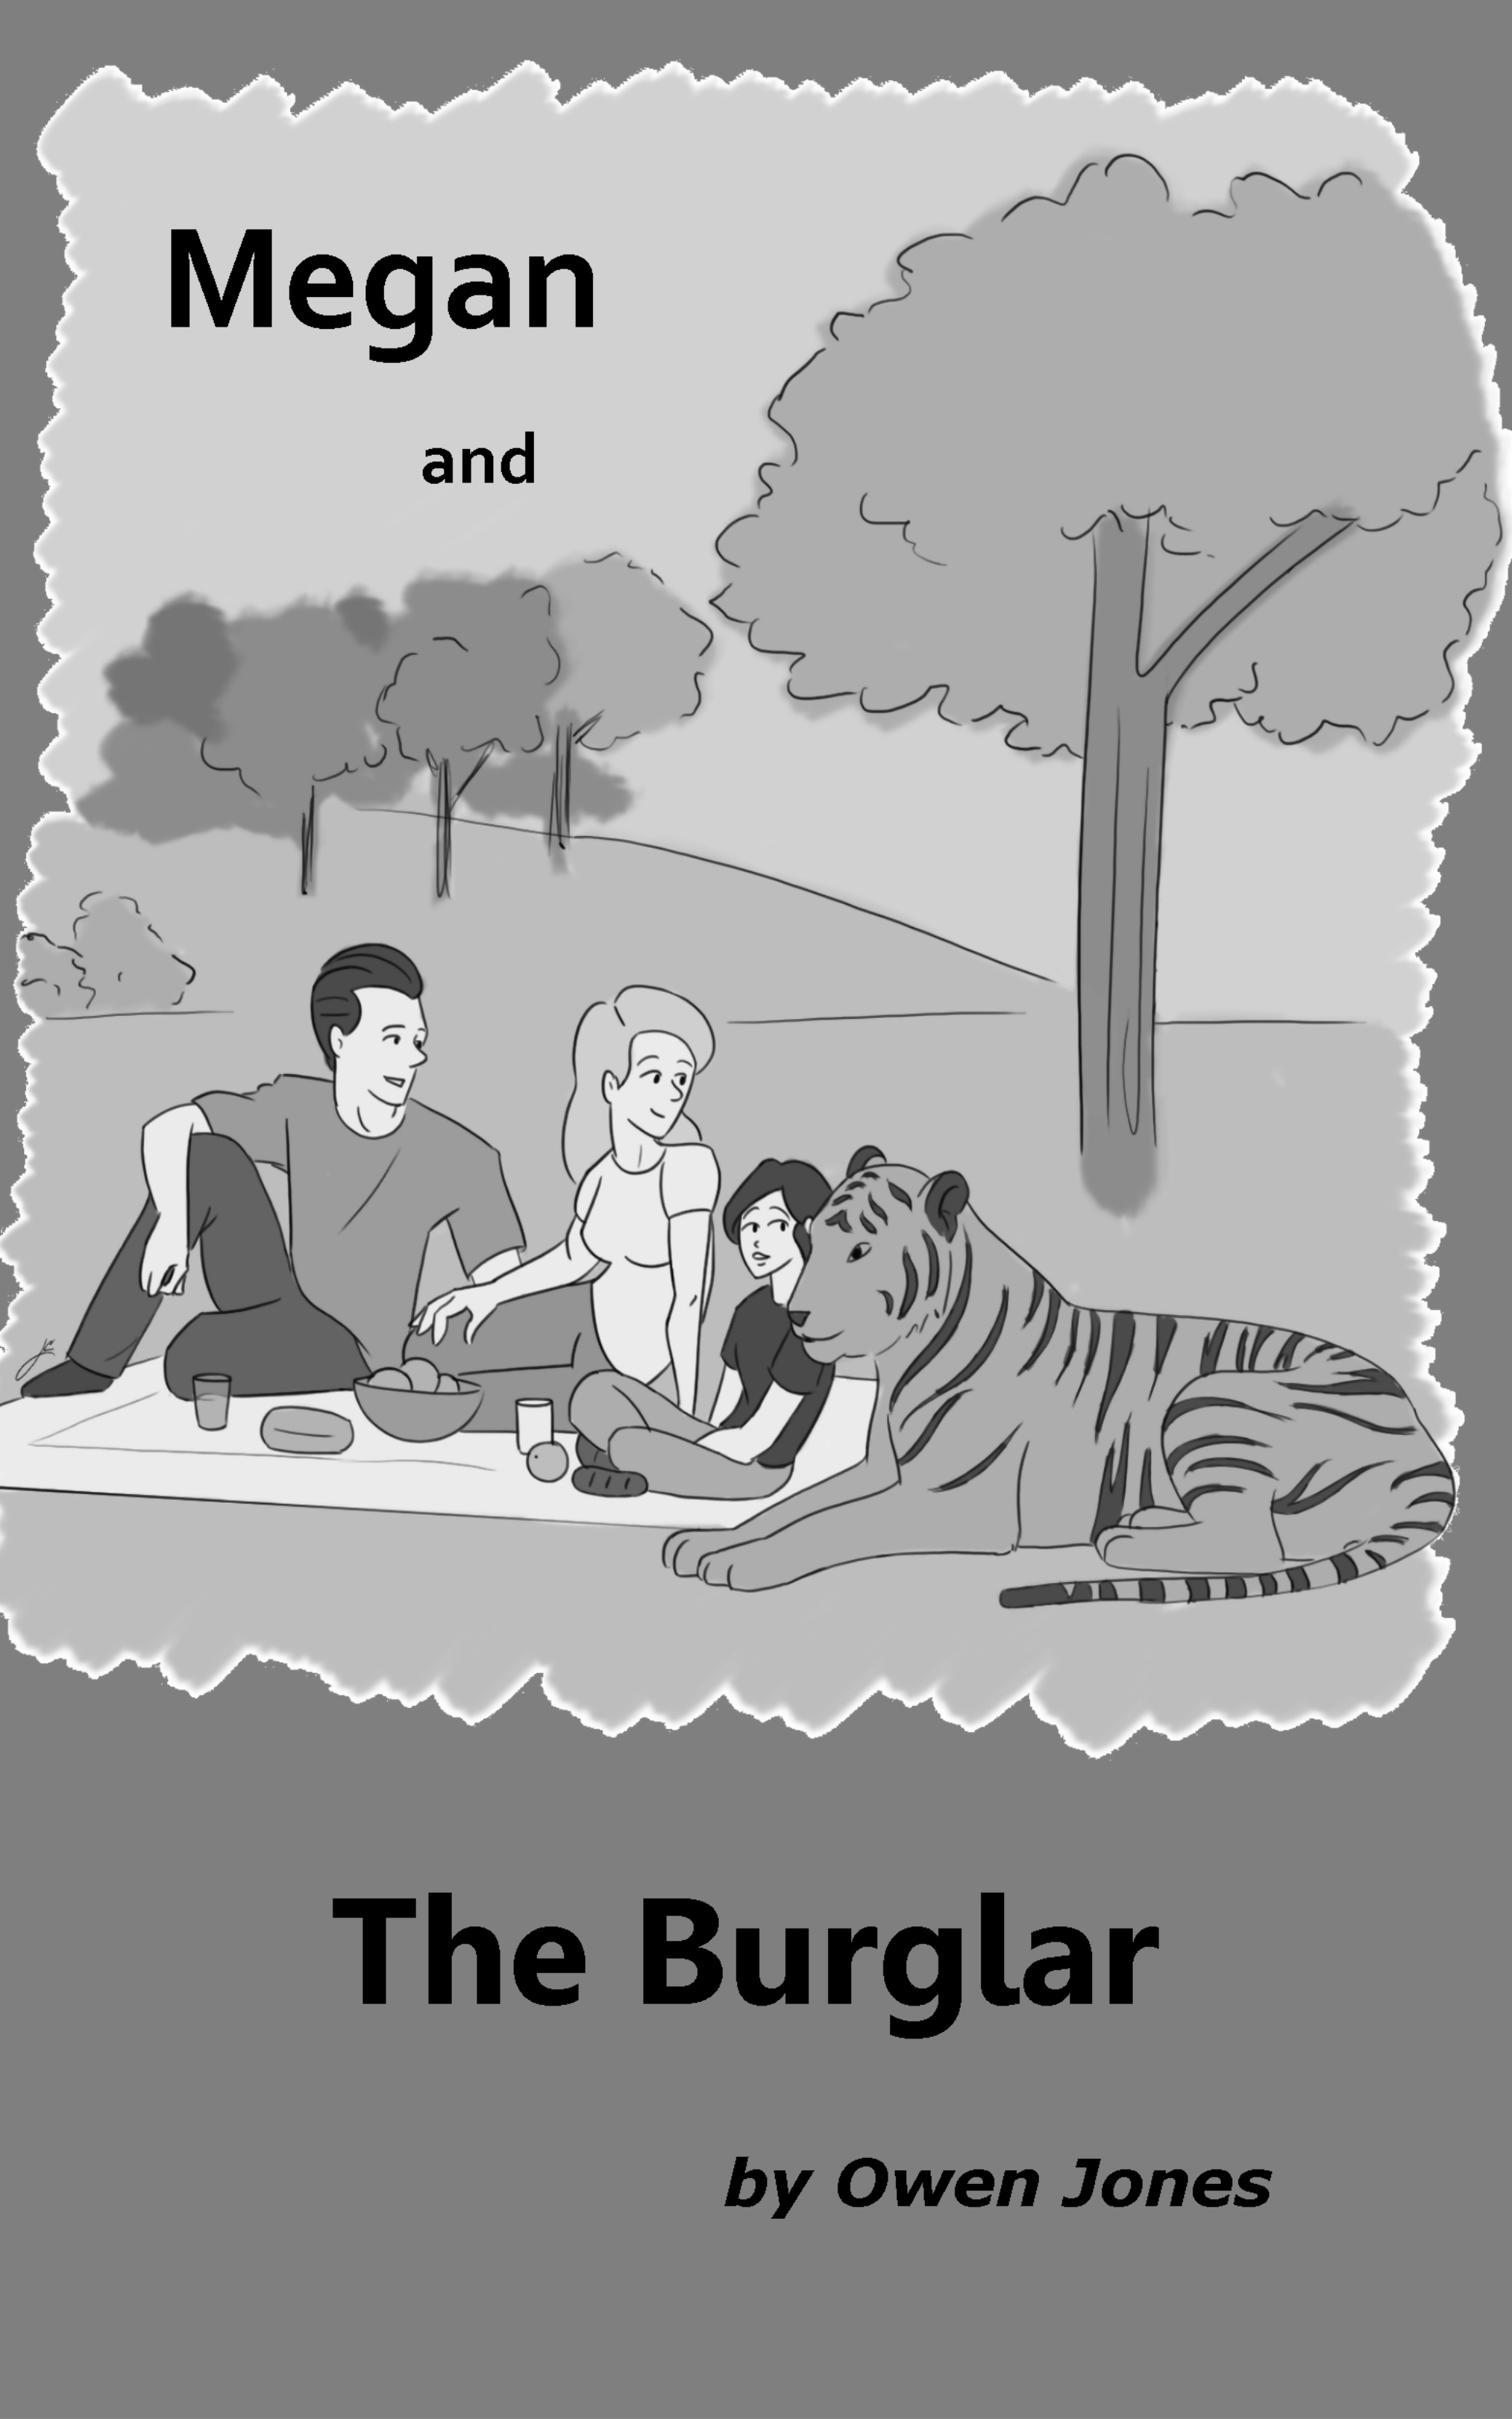 Megan and the burglar